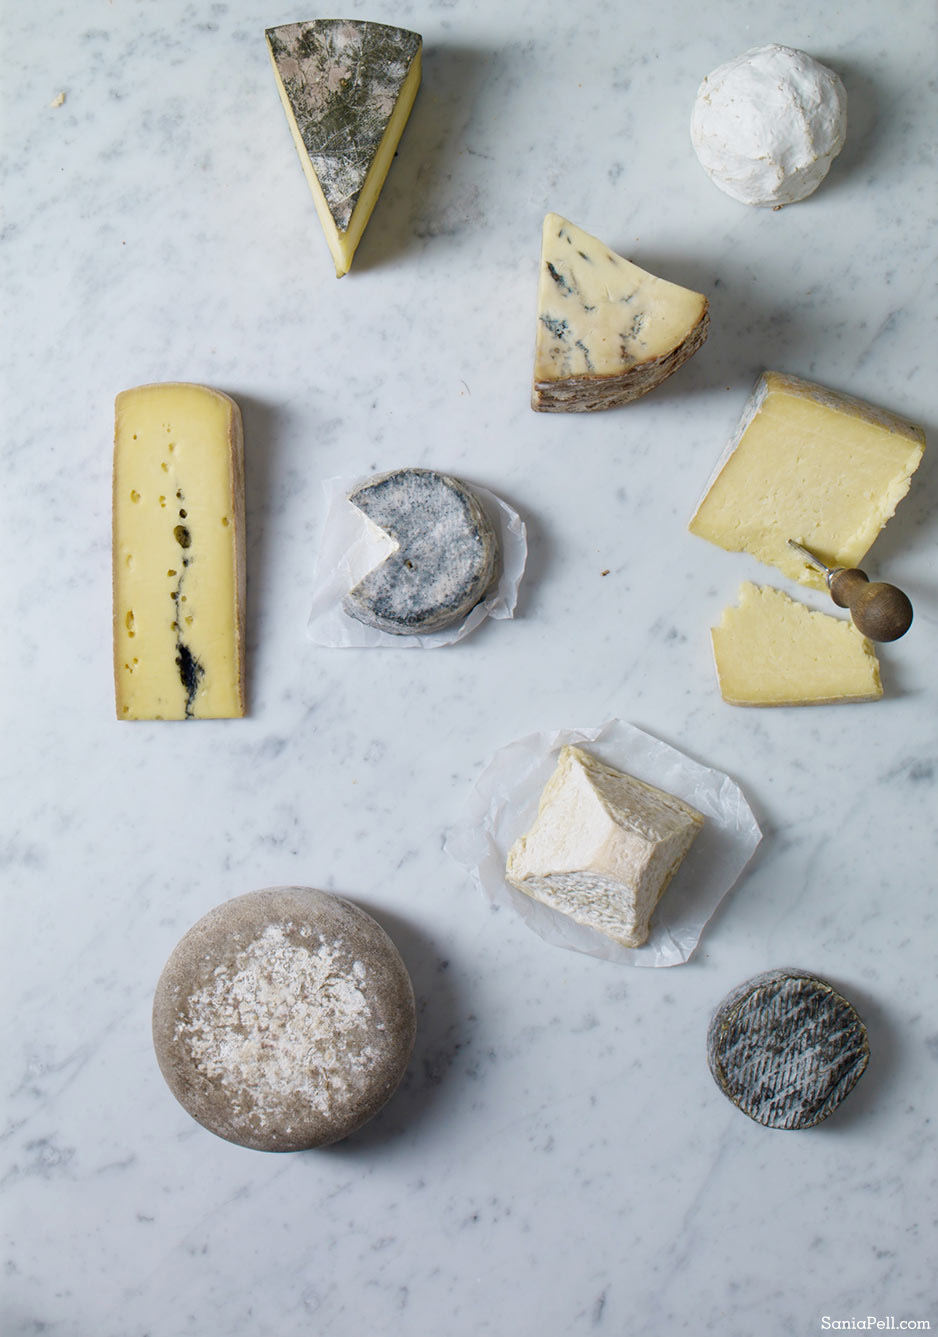 cheeses-that-pleases-light-13